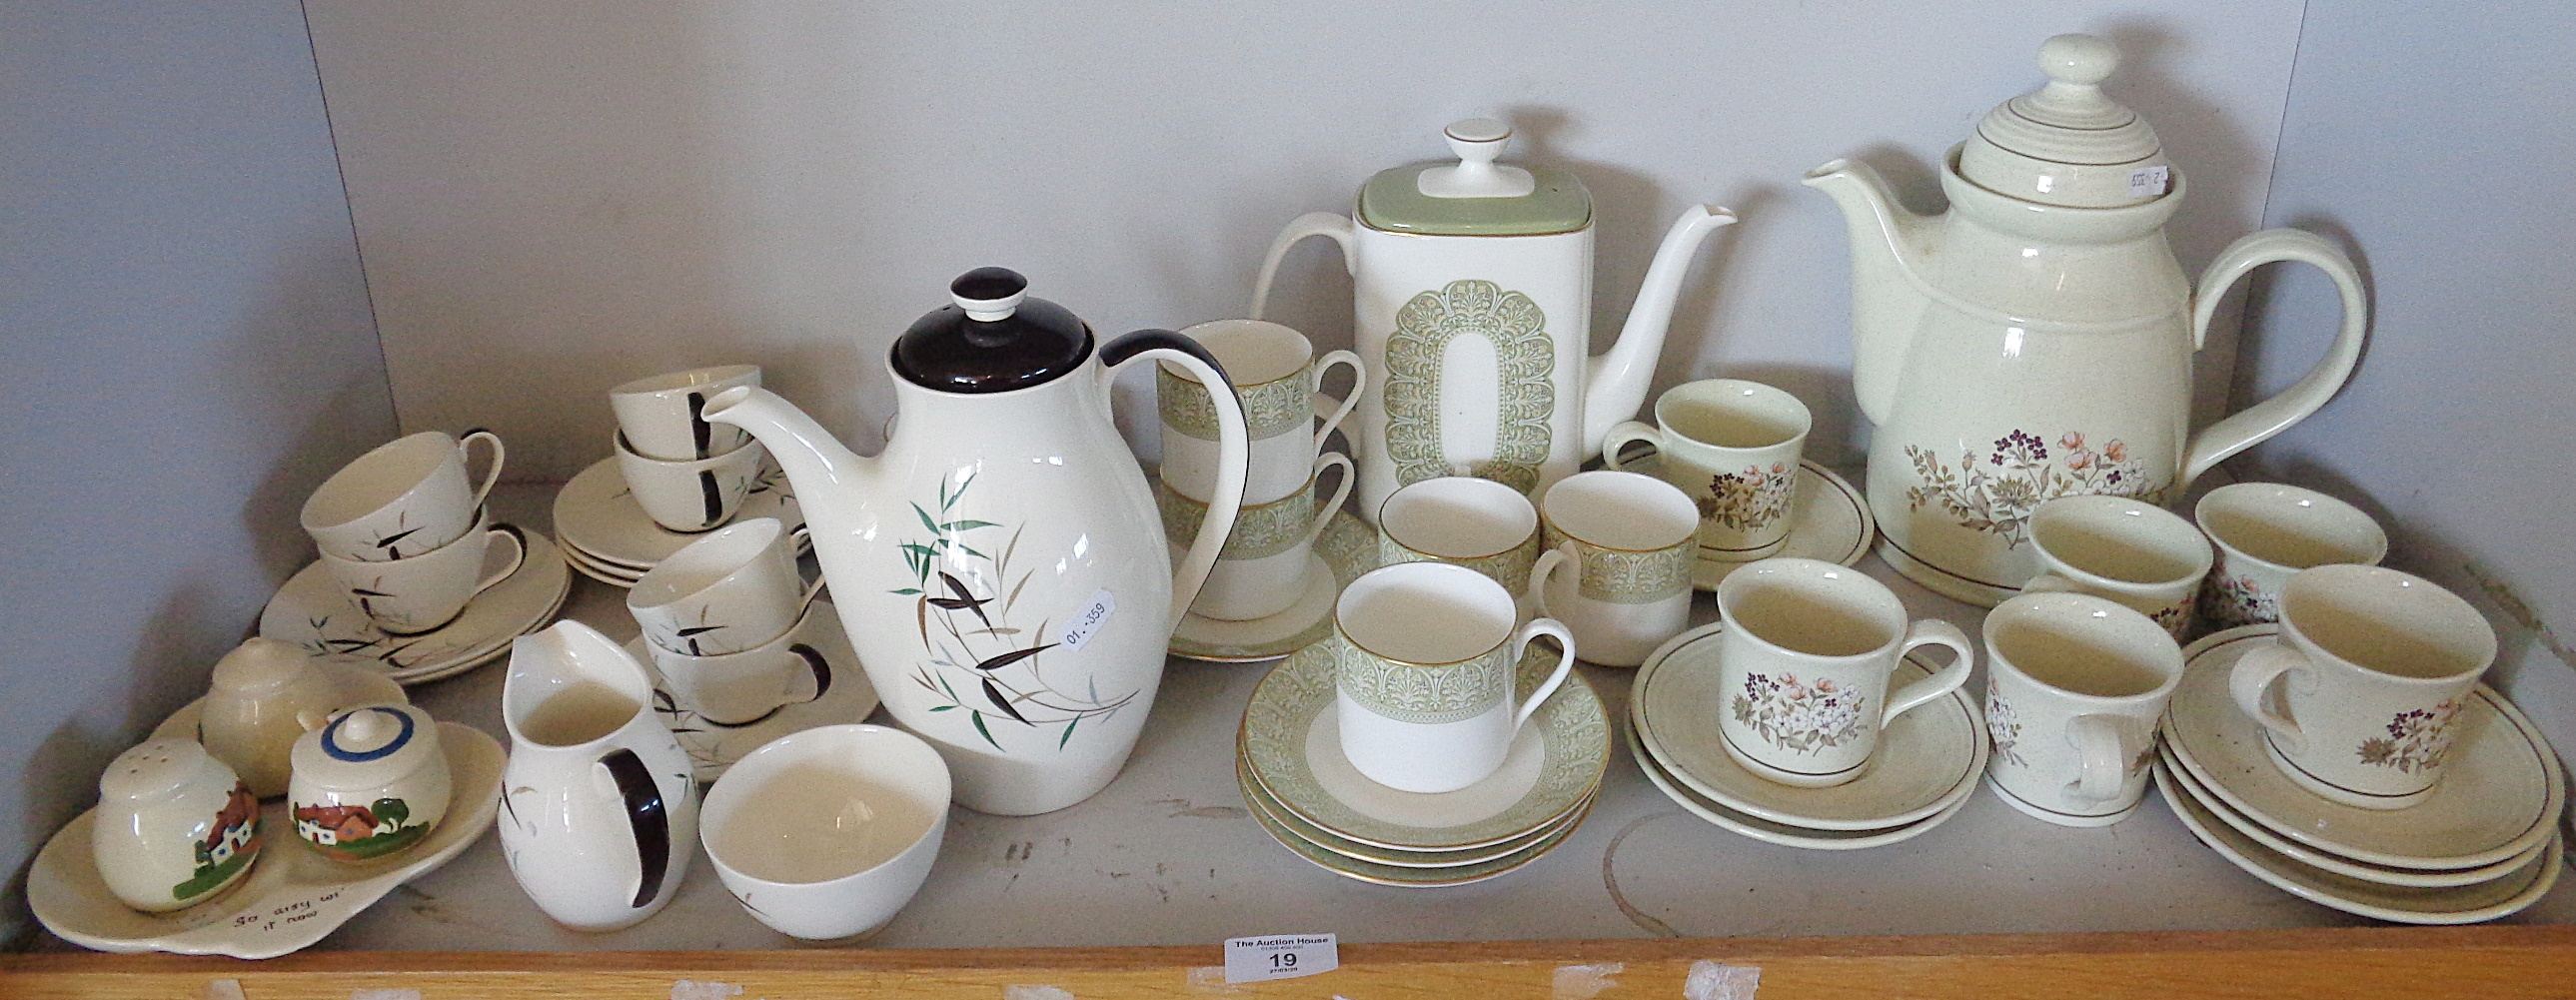 "Lot 19 - Royal Doulton ""Bamboo"" pattern tea set, together with a Royal Doulton ""Sonnet"" china tea set and a"